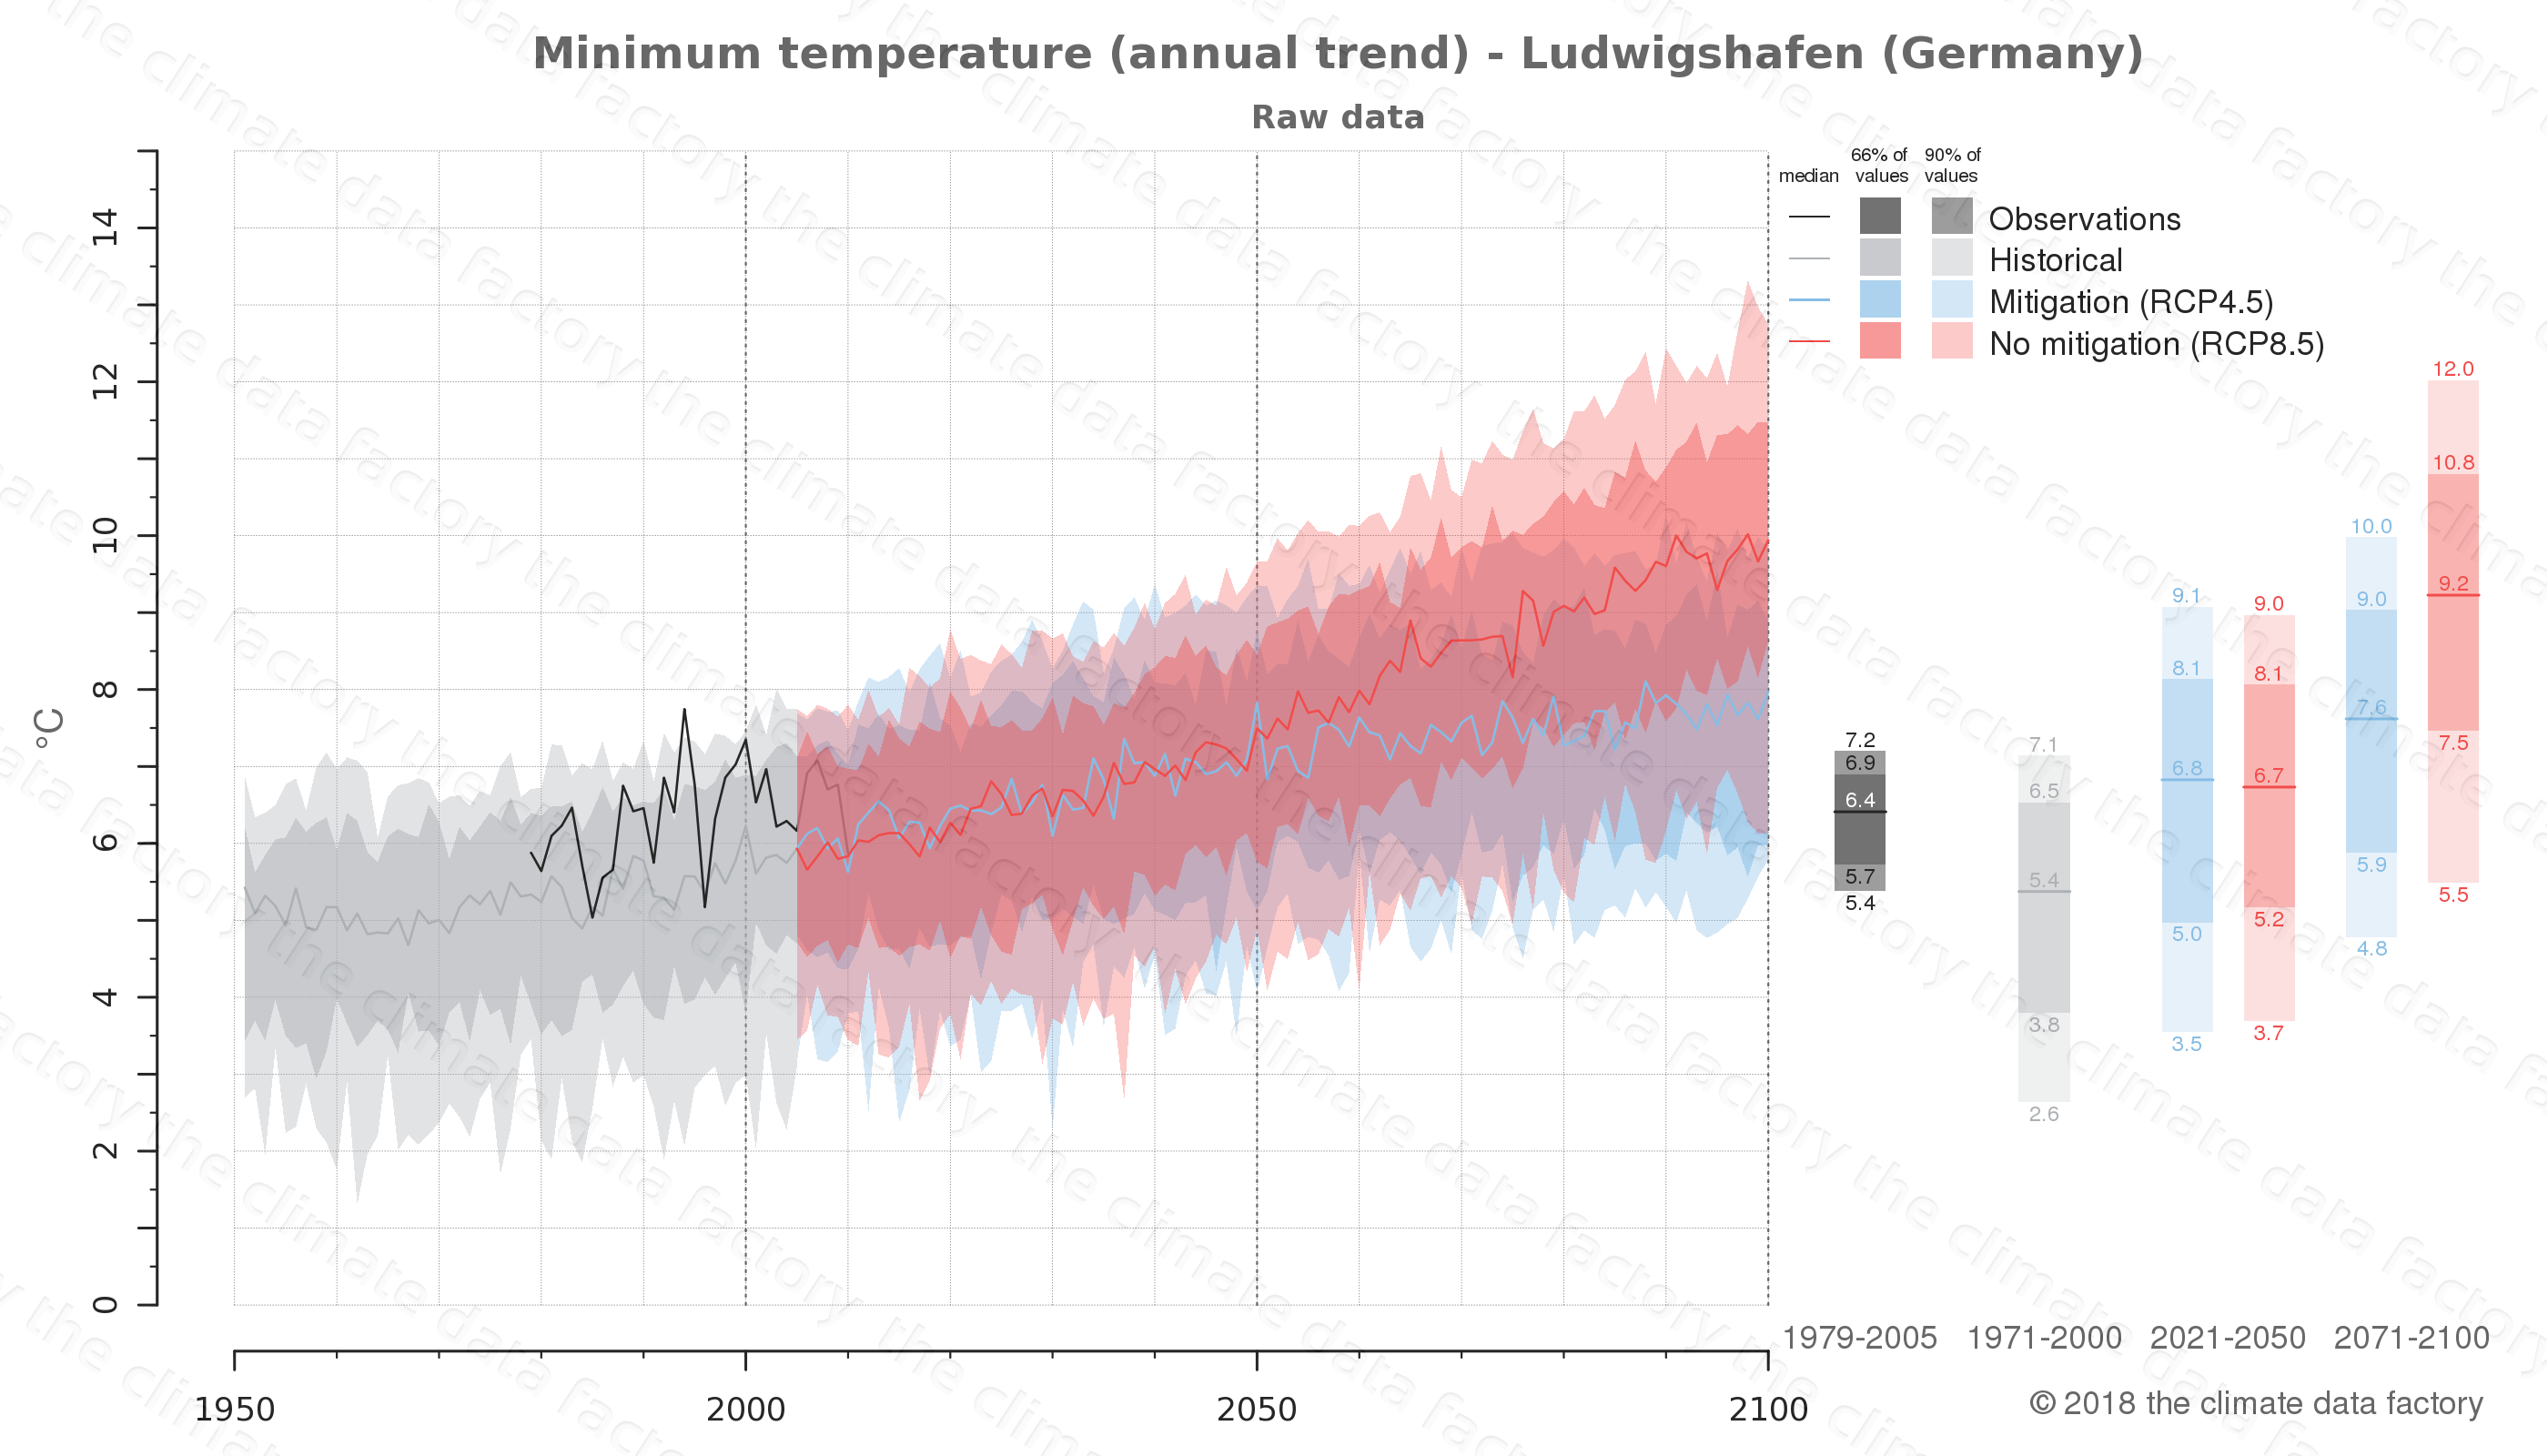 climate change data policy adaptation climate graph city data minimum-temperature ludwigshafen germany